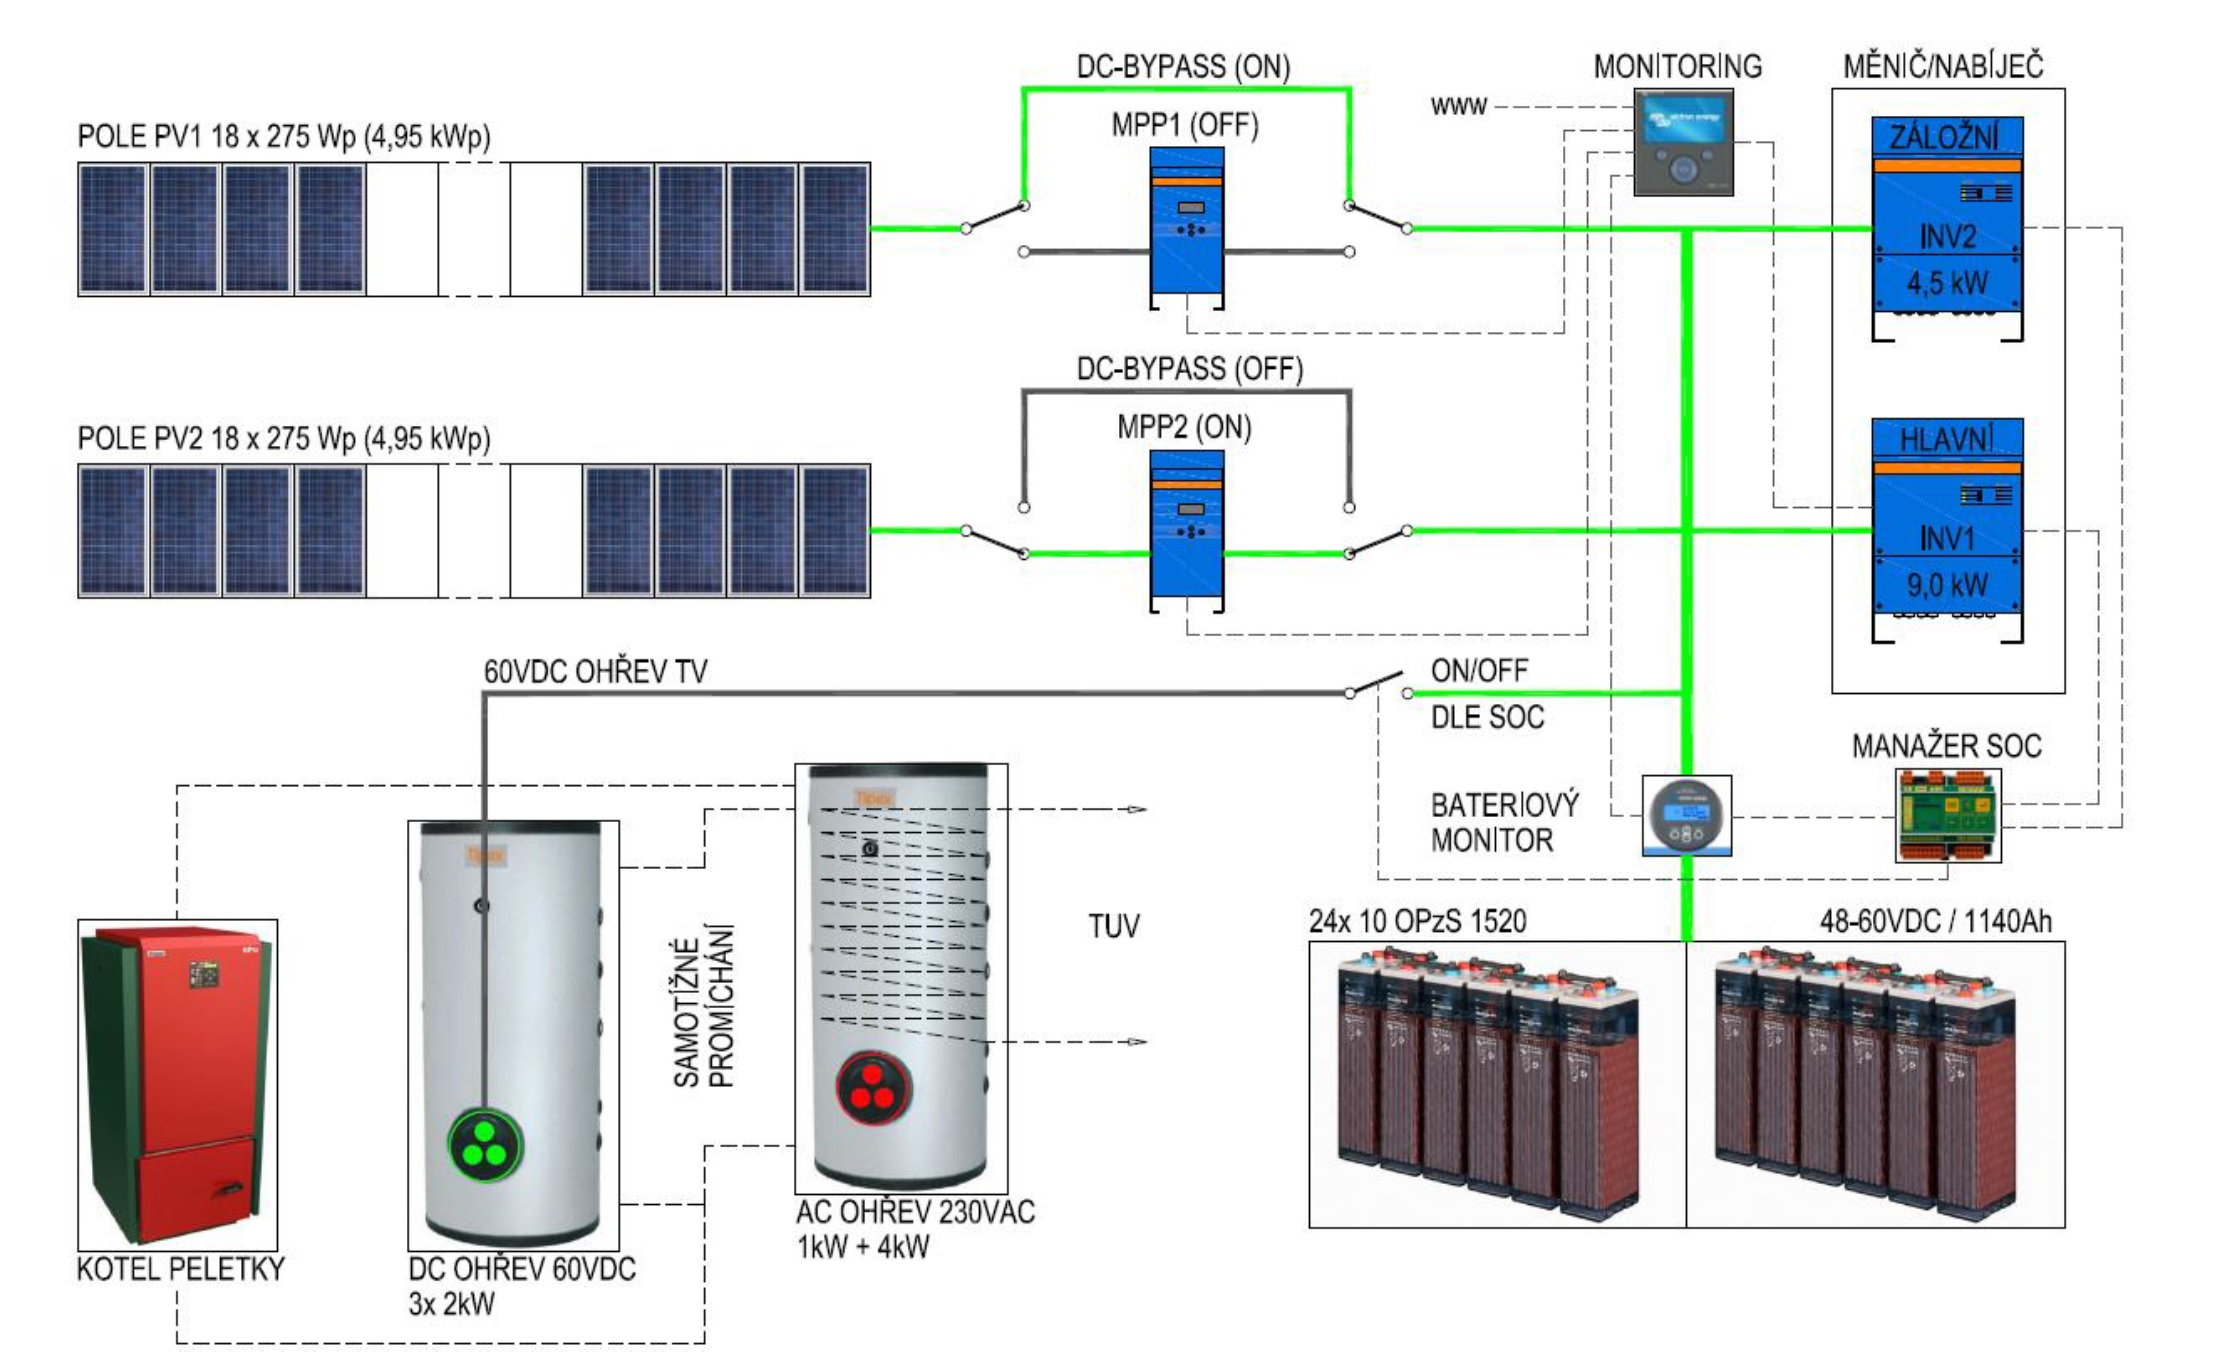 dc to ac inverter diagram 1 phase motor wiring victron enhanced off-grid system - energy |